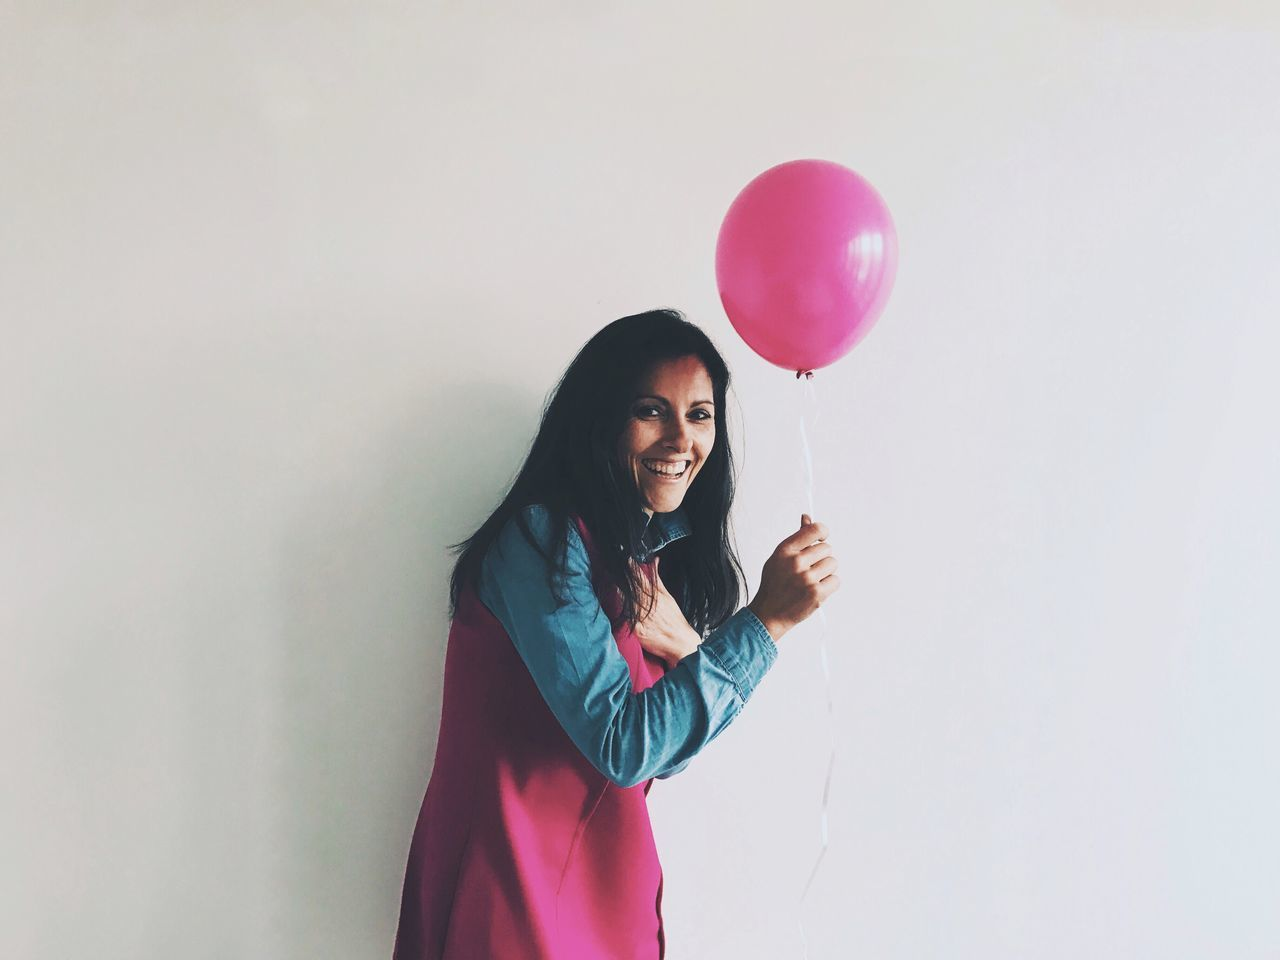 Waist Up One Person Smiling Standing Happiness Balloon Lifestyles Real People Looking At Camera Holding Portrait Leisure Activity Beautiful Woman Women Cheerful Young Adult Day Pink People